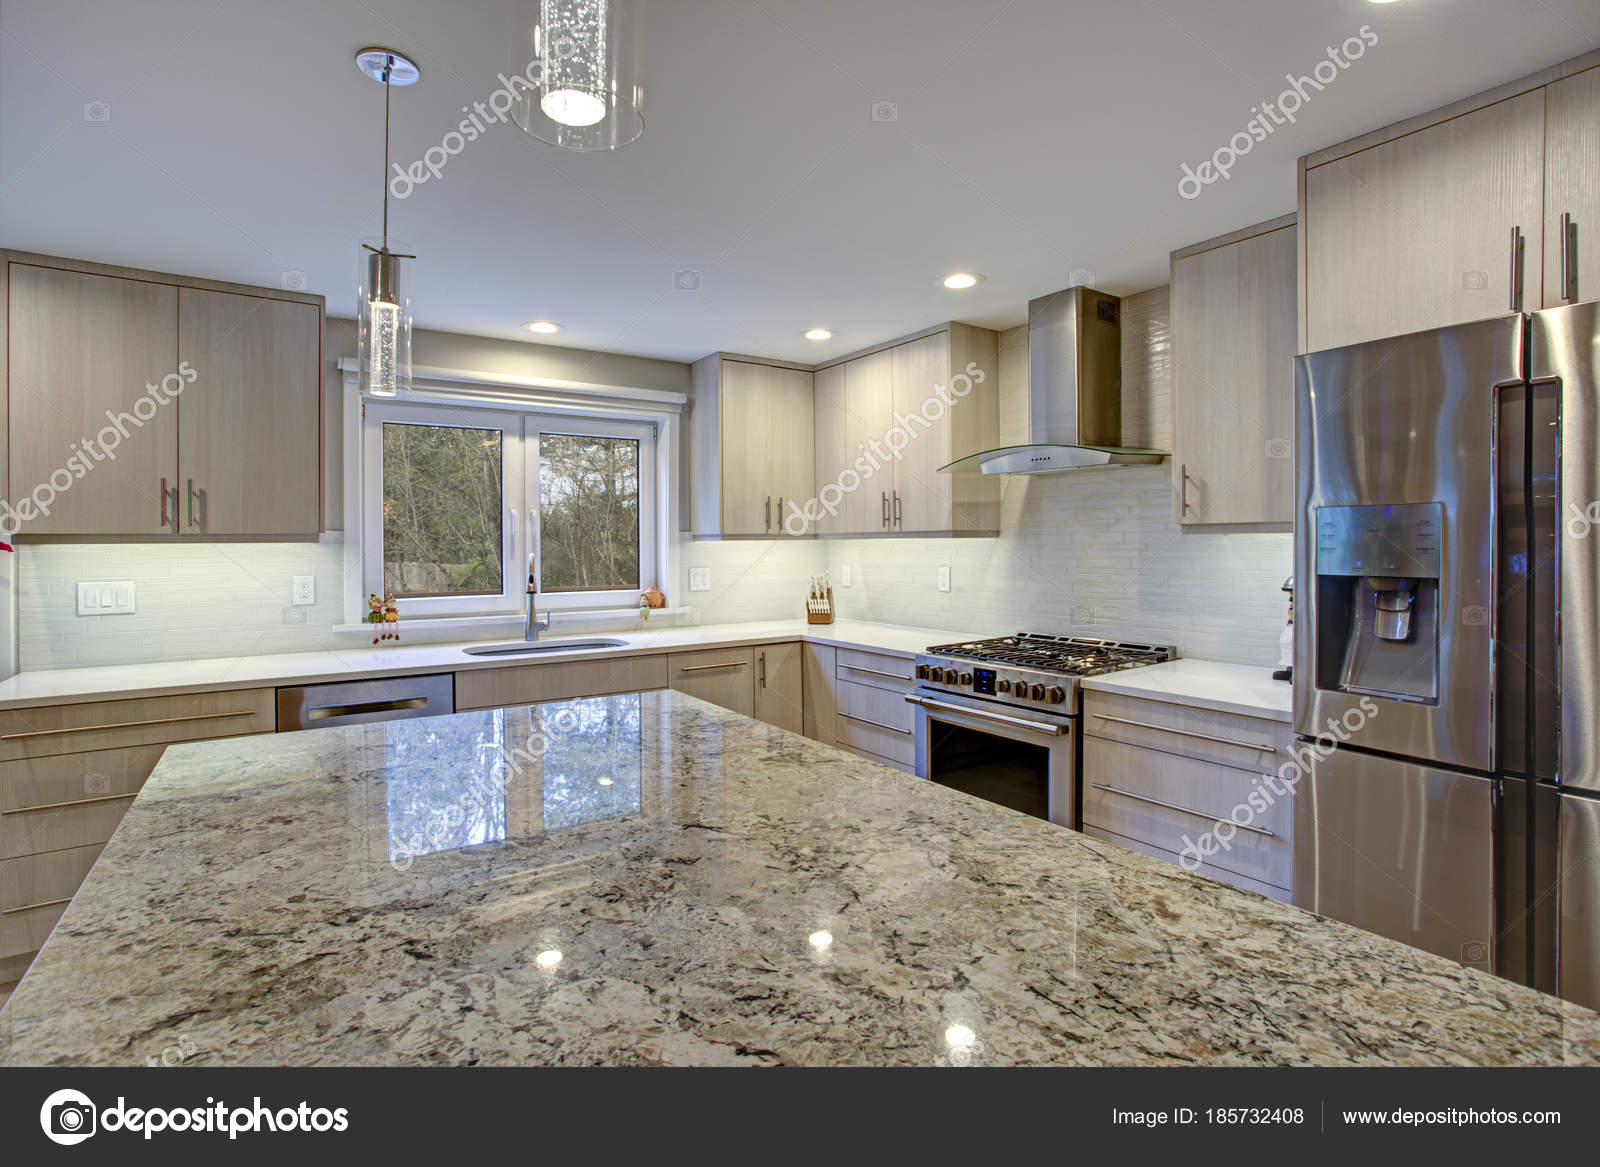 kitchen back splash hotels in nyc with kitchens 可爱的厨房房间与厨房海岛 图库照片 c alabn 185732408